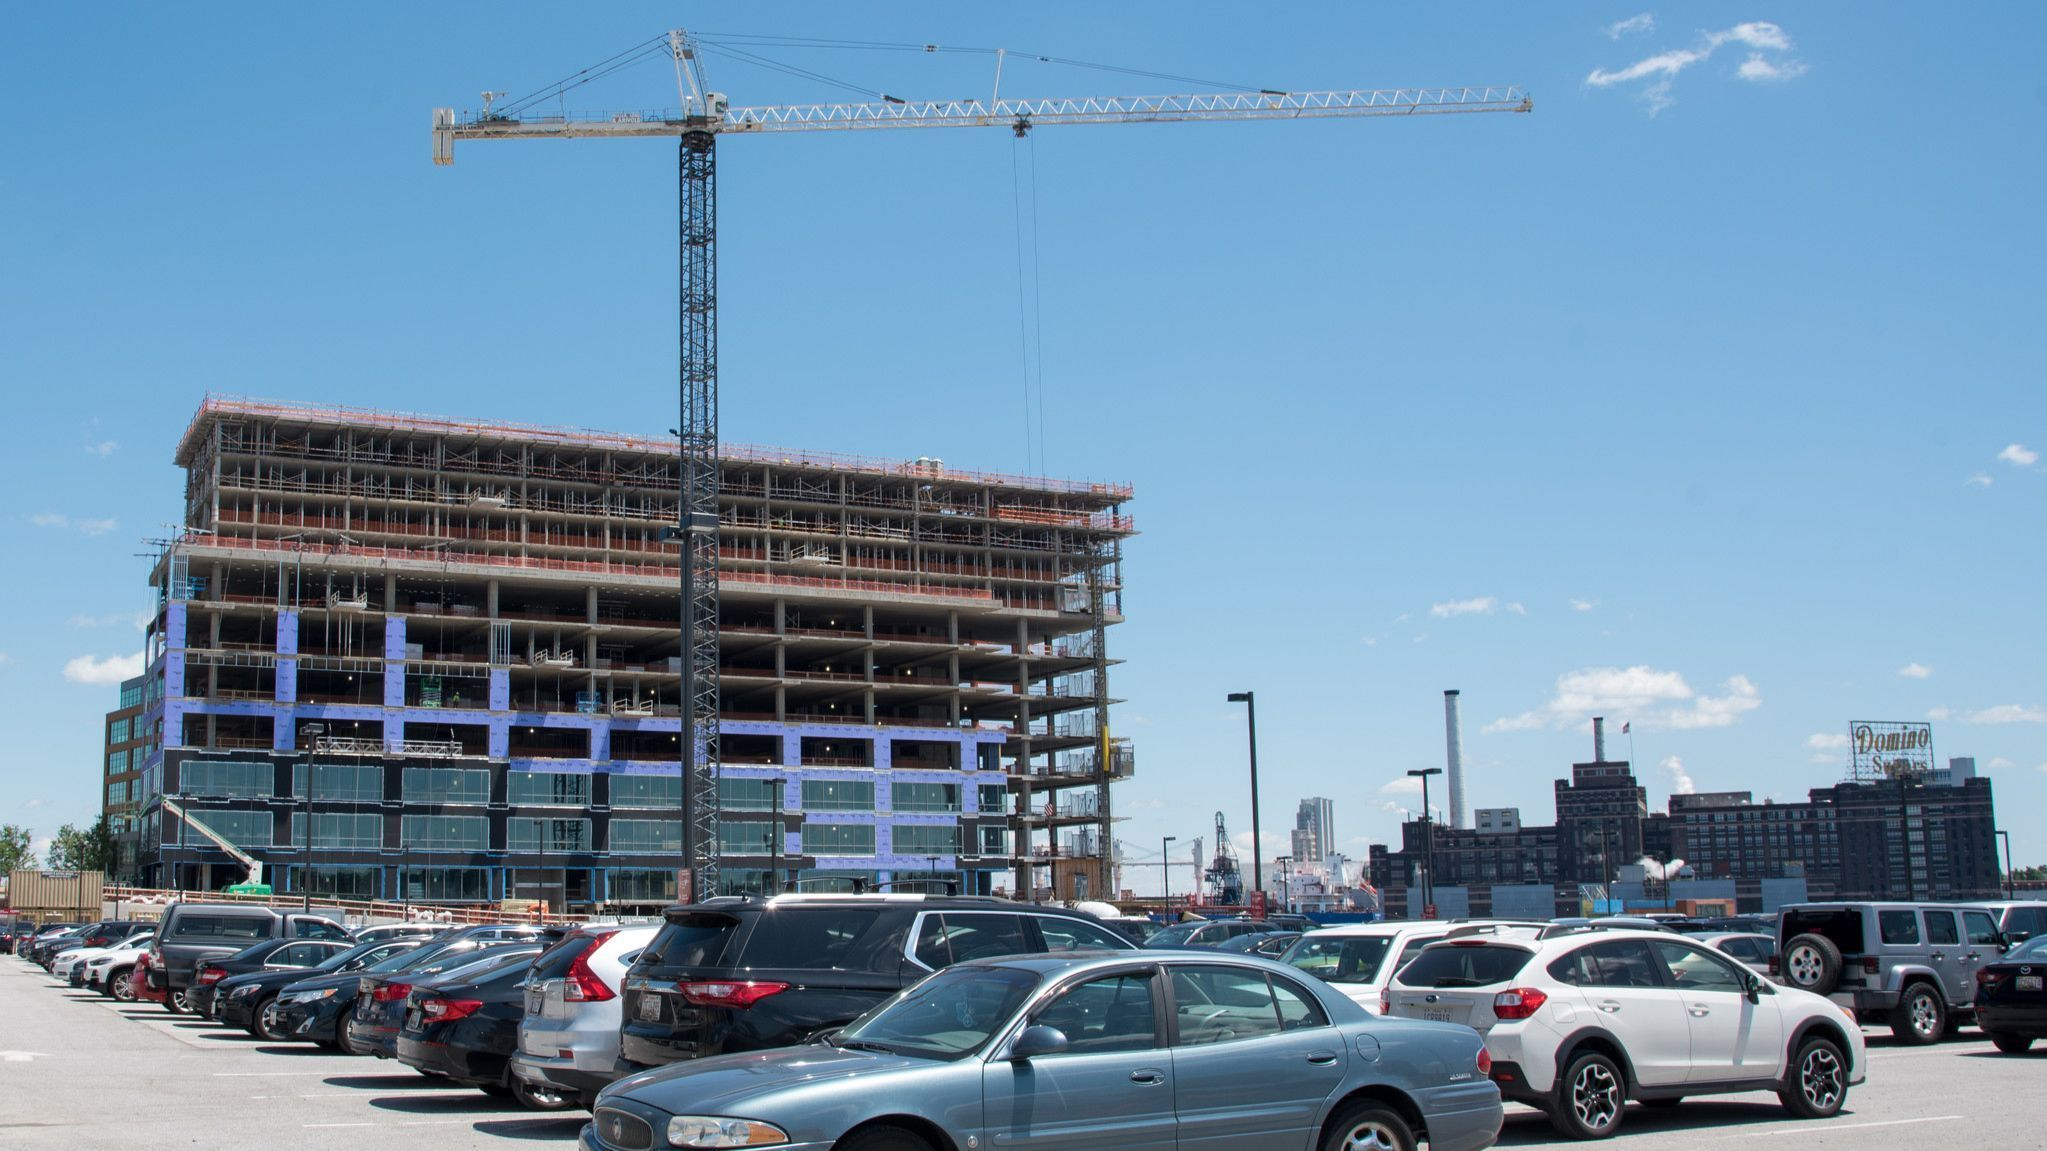 Baltimore's Harbor Point becomes a Cinderella story for an industrial site people once avoided